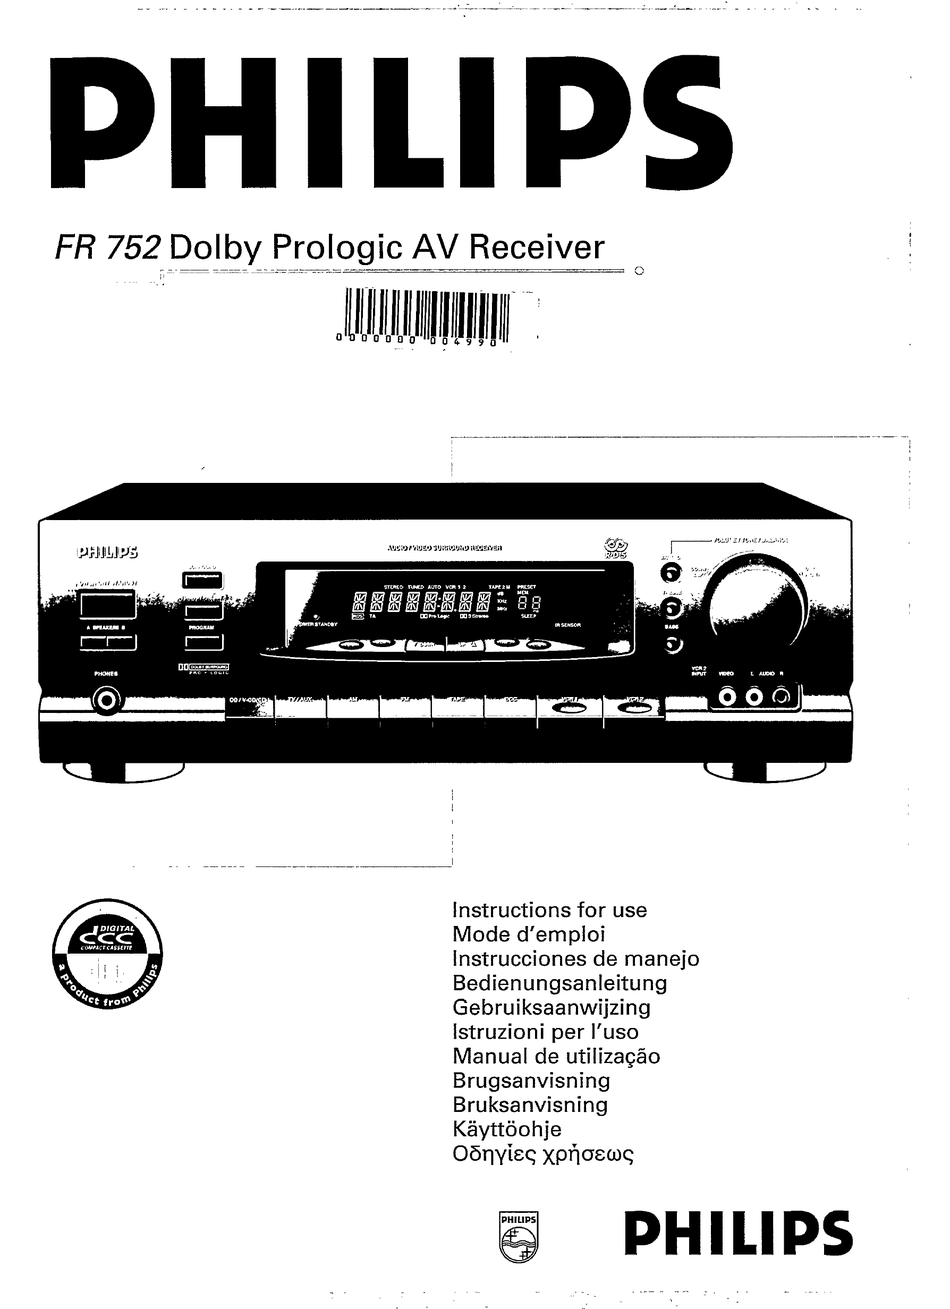 PHILIPS FR752/01X INSTRUCTIONS FOR USE MANUAL Pdf Download